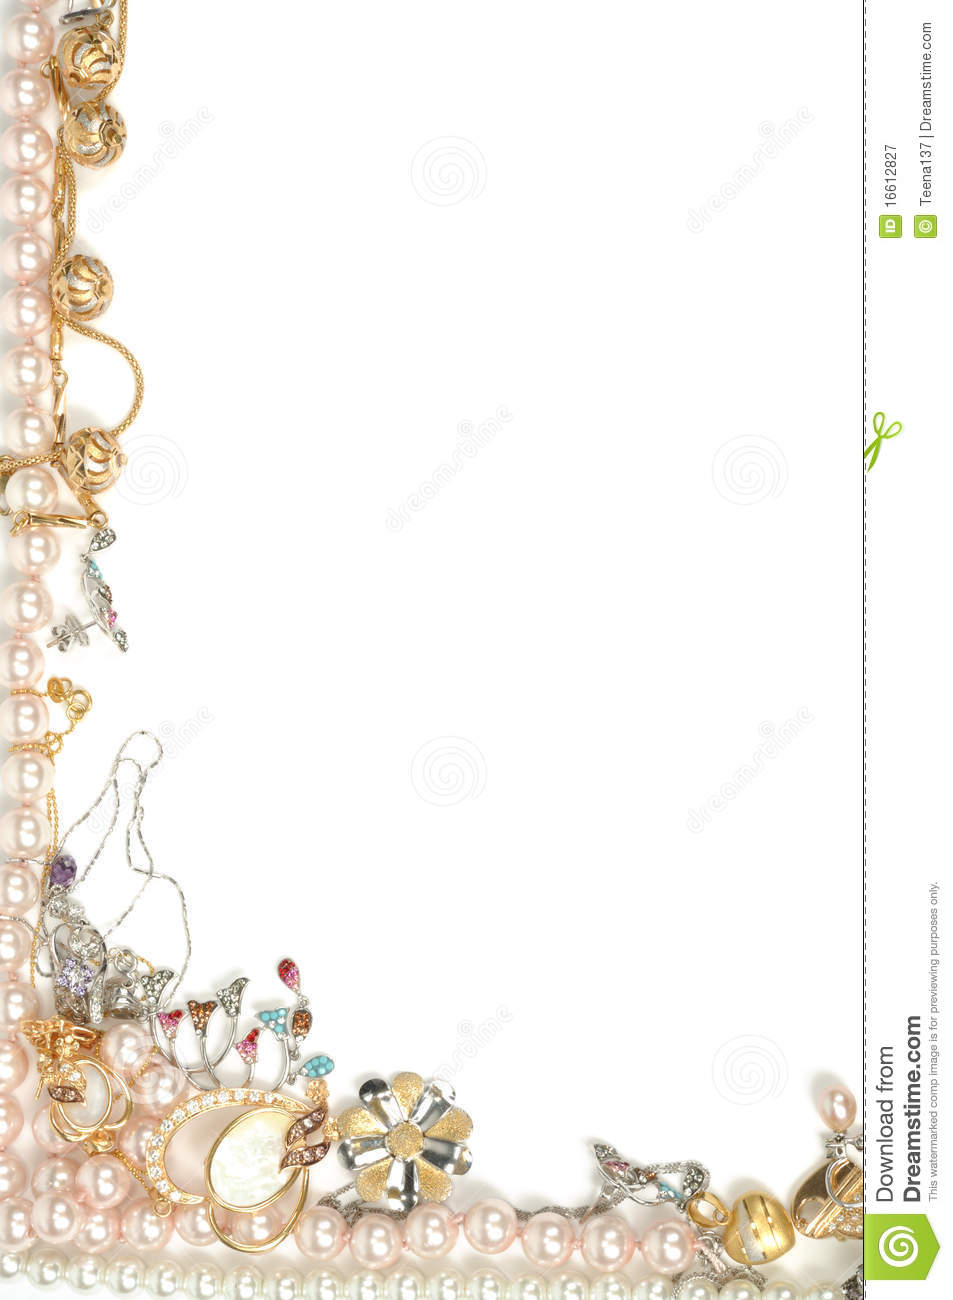 Jewelry Frame Royalty Free Stock Photography Image 16612827